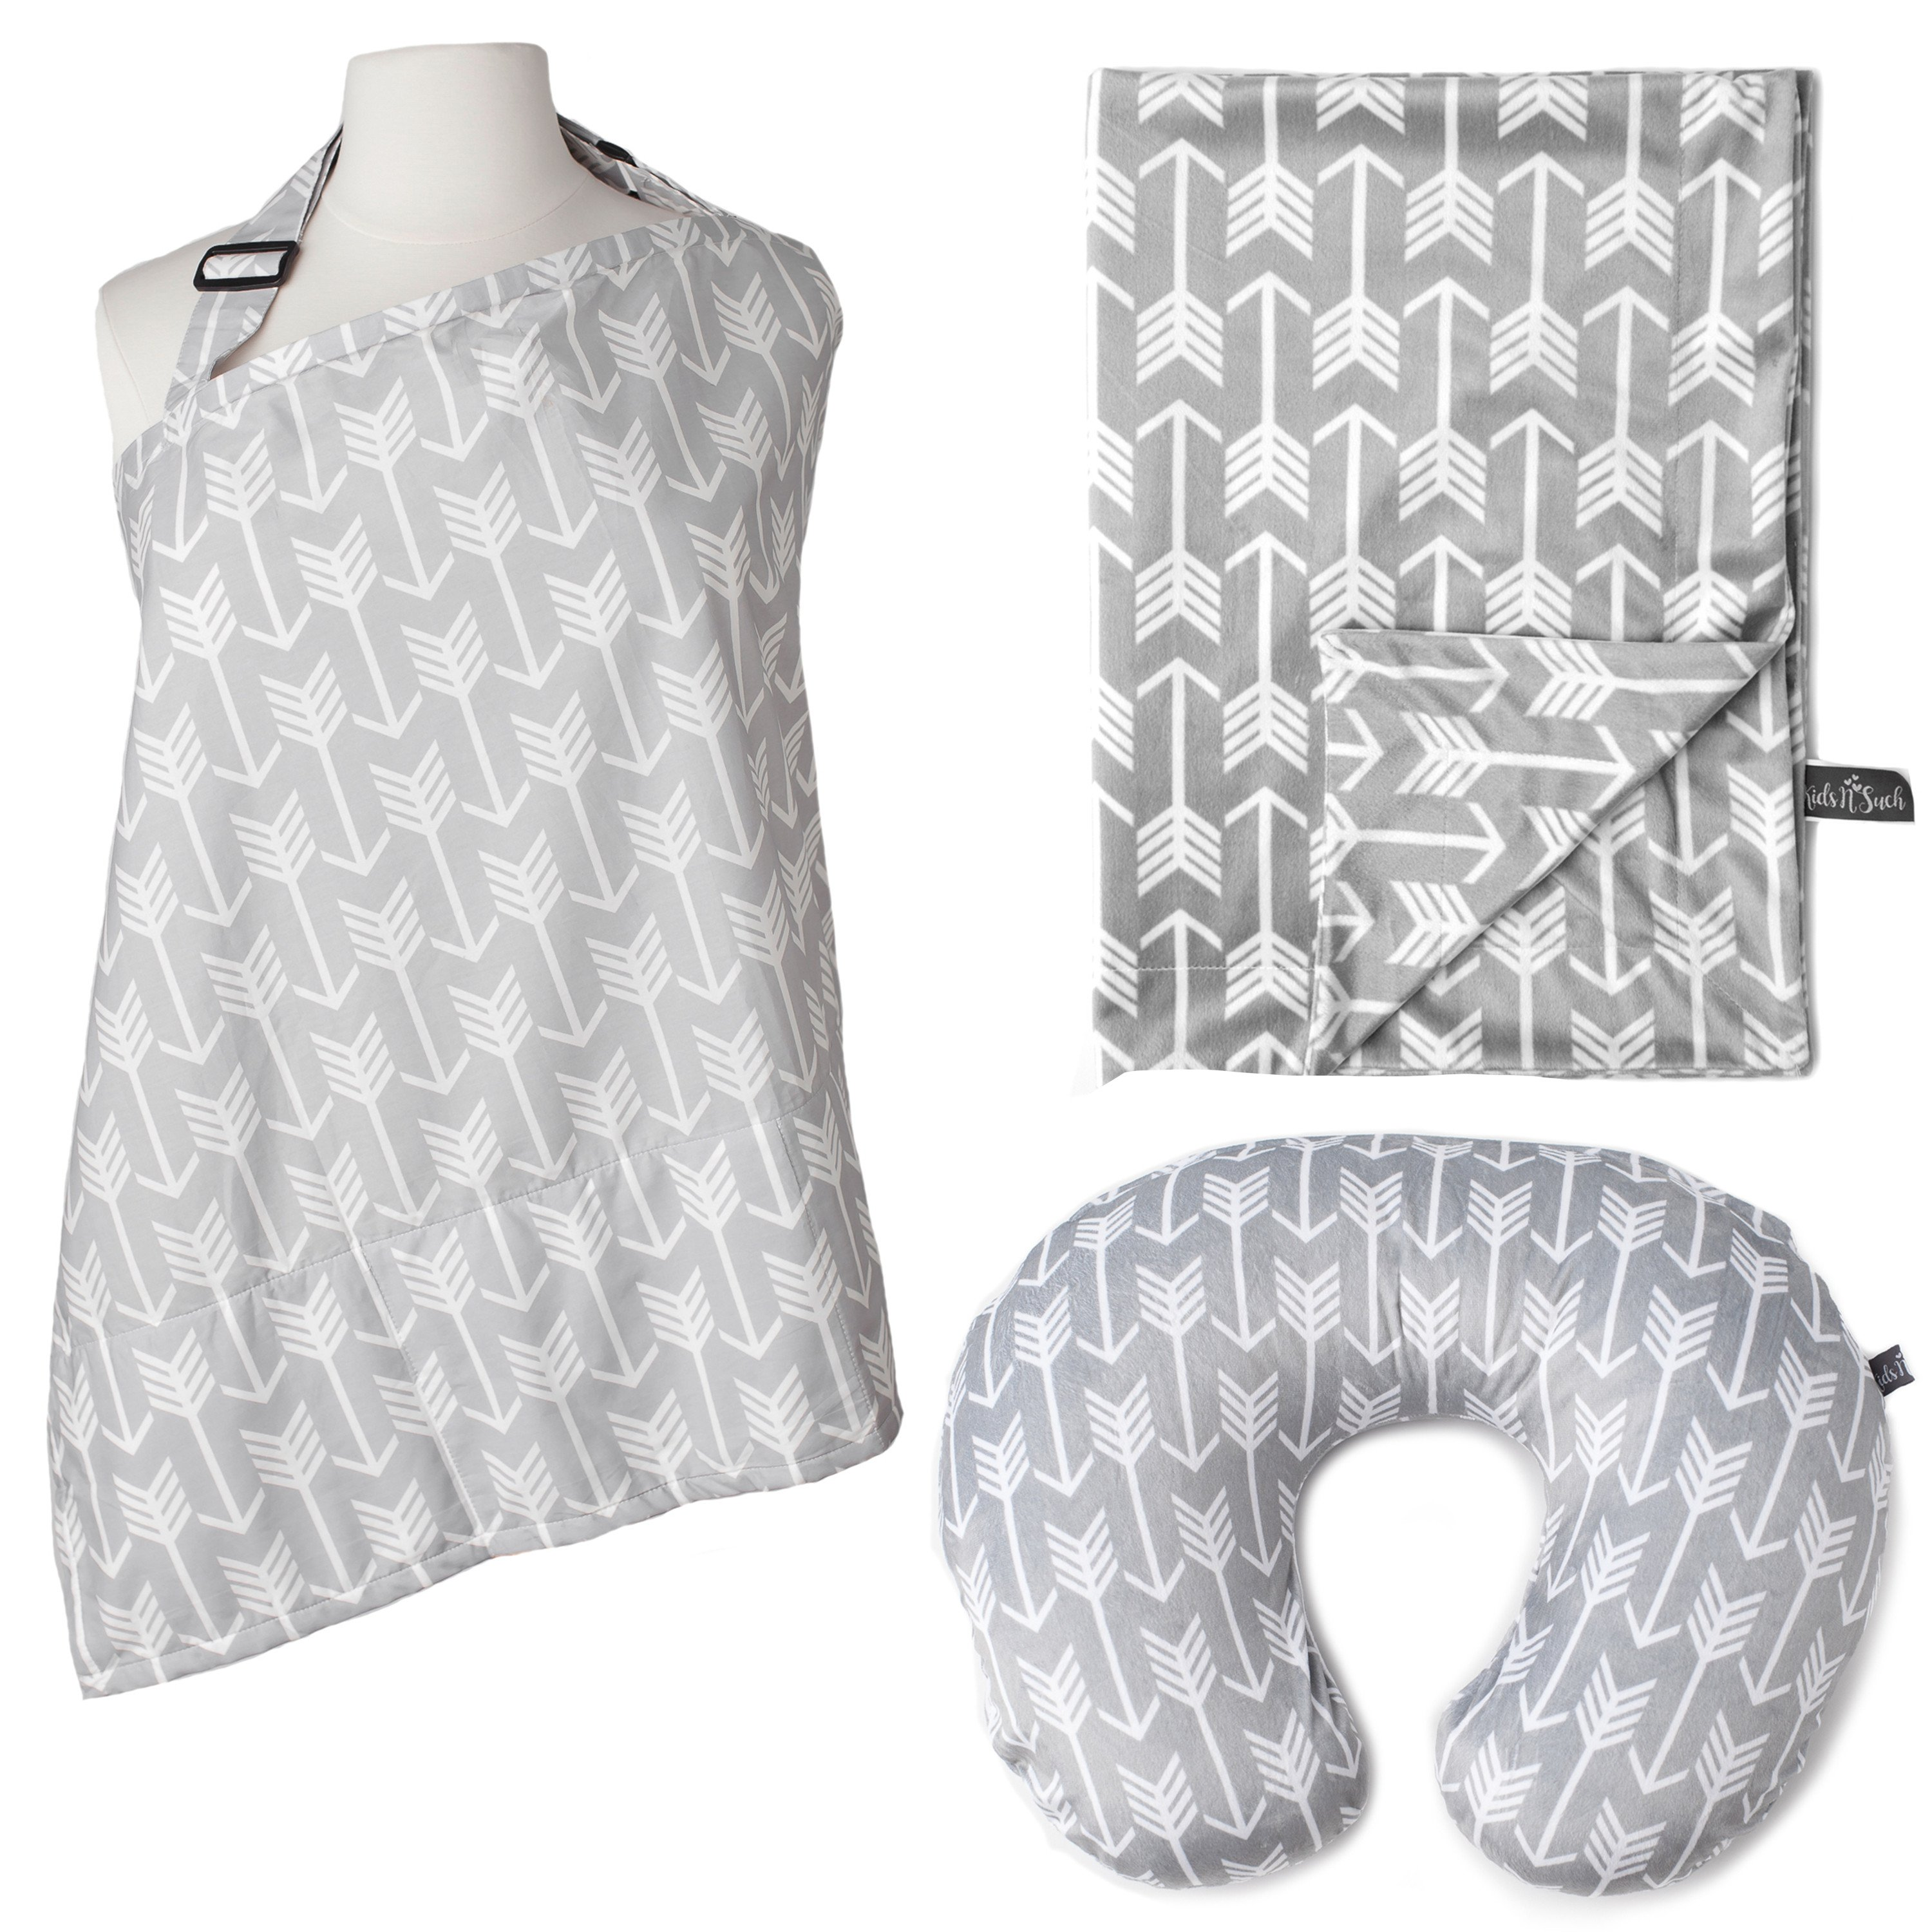 Kids N' Such 3-Pack Bundle of Arrow Nursing Cover, Nursing Pillow Cover, and Baby Blanket